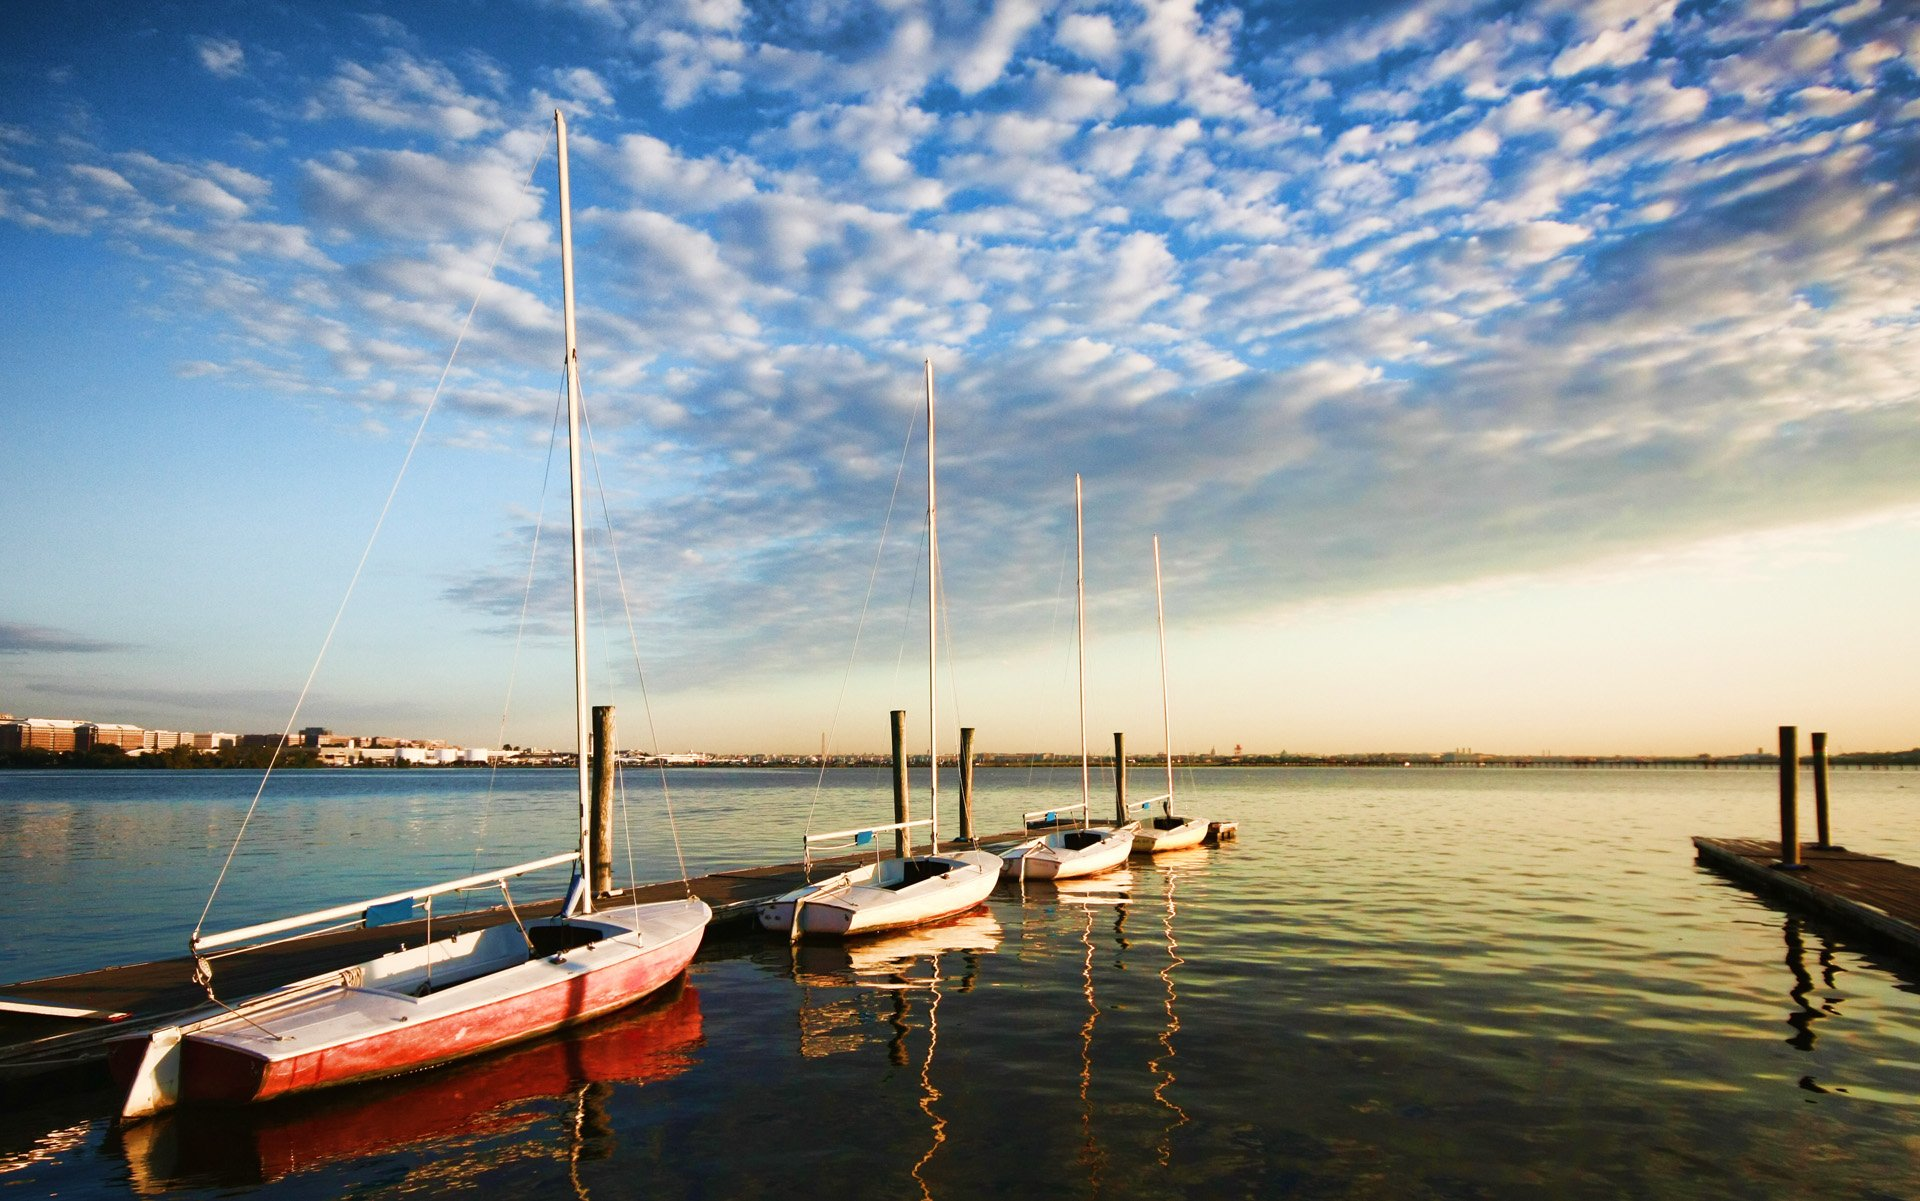 Sailing and Cruising on the Potomac in Washington, D.C. 2020 - Best Time